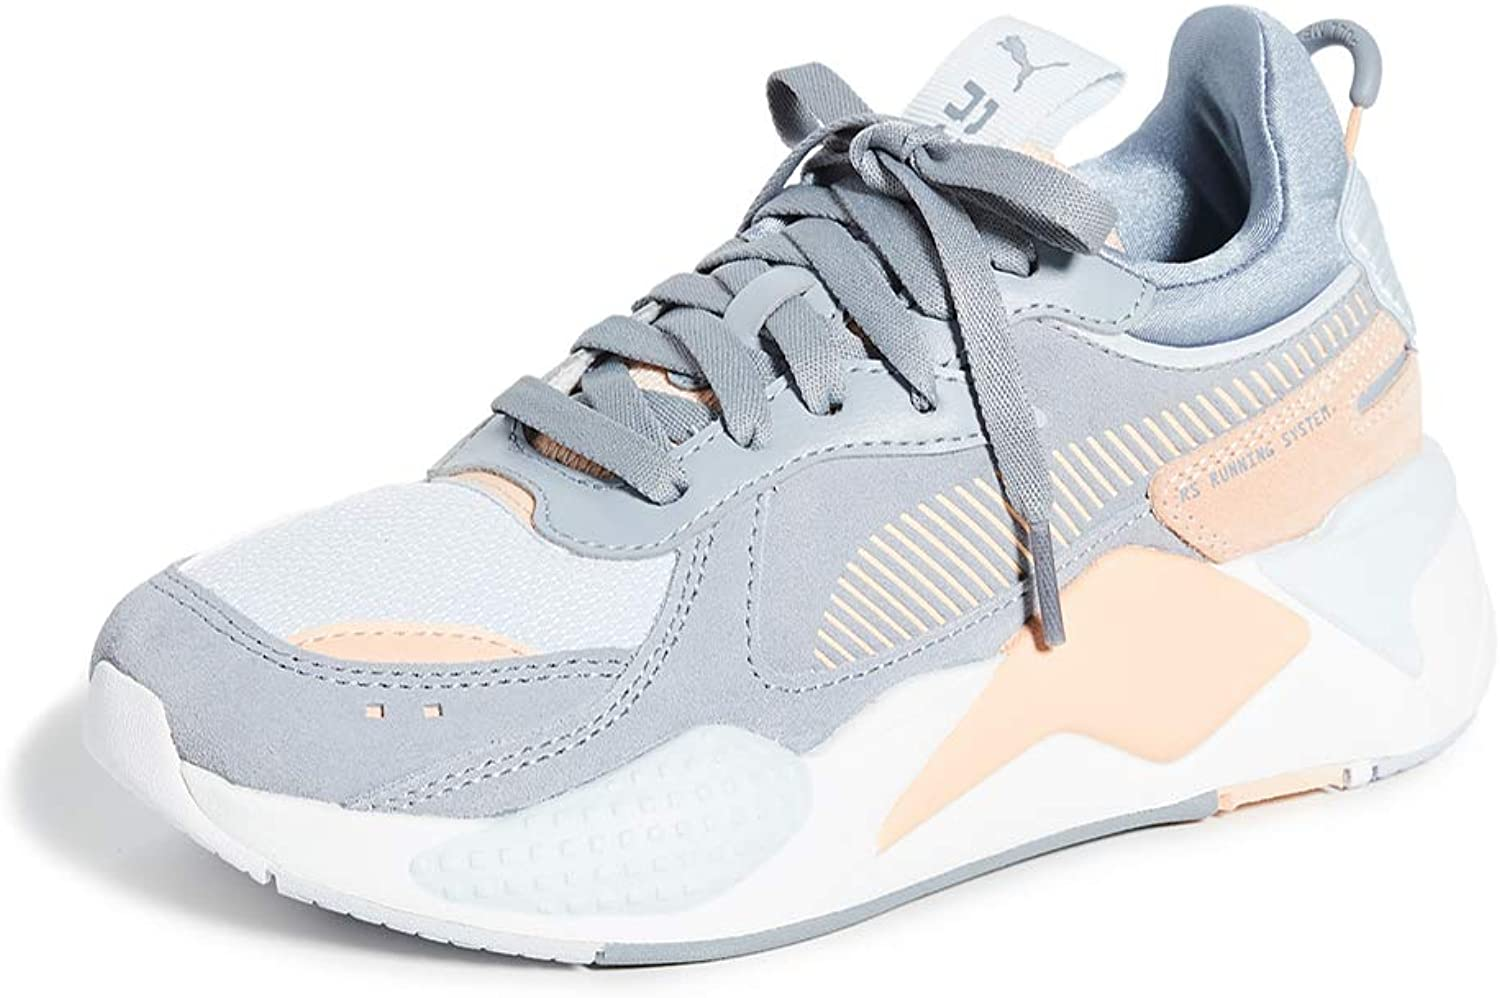 PUMA Women's RS-X Reinvent Sneakers